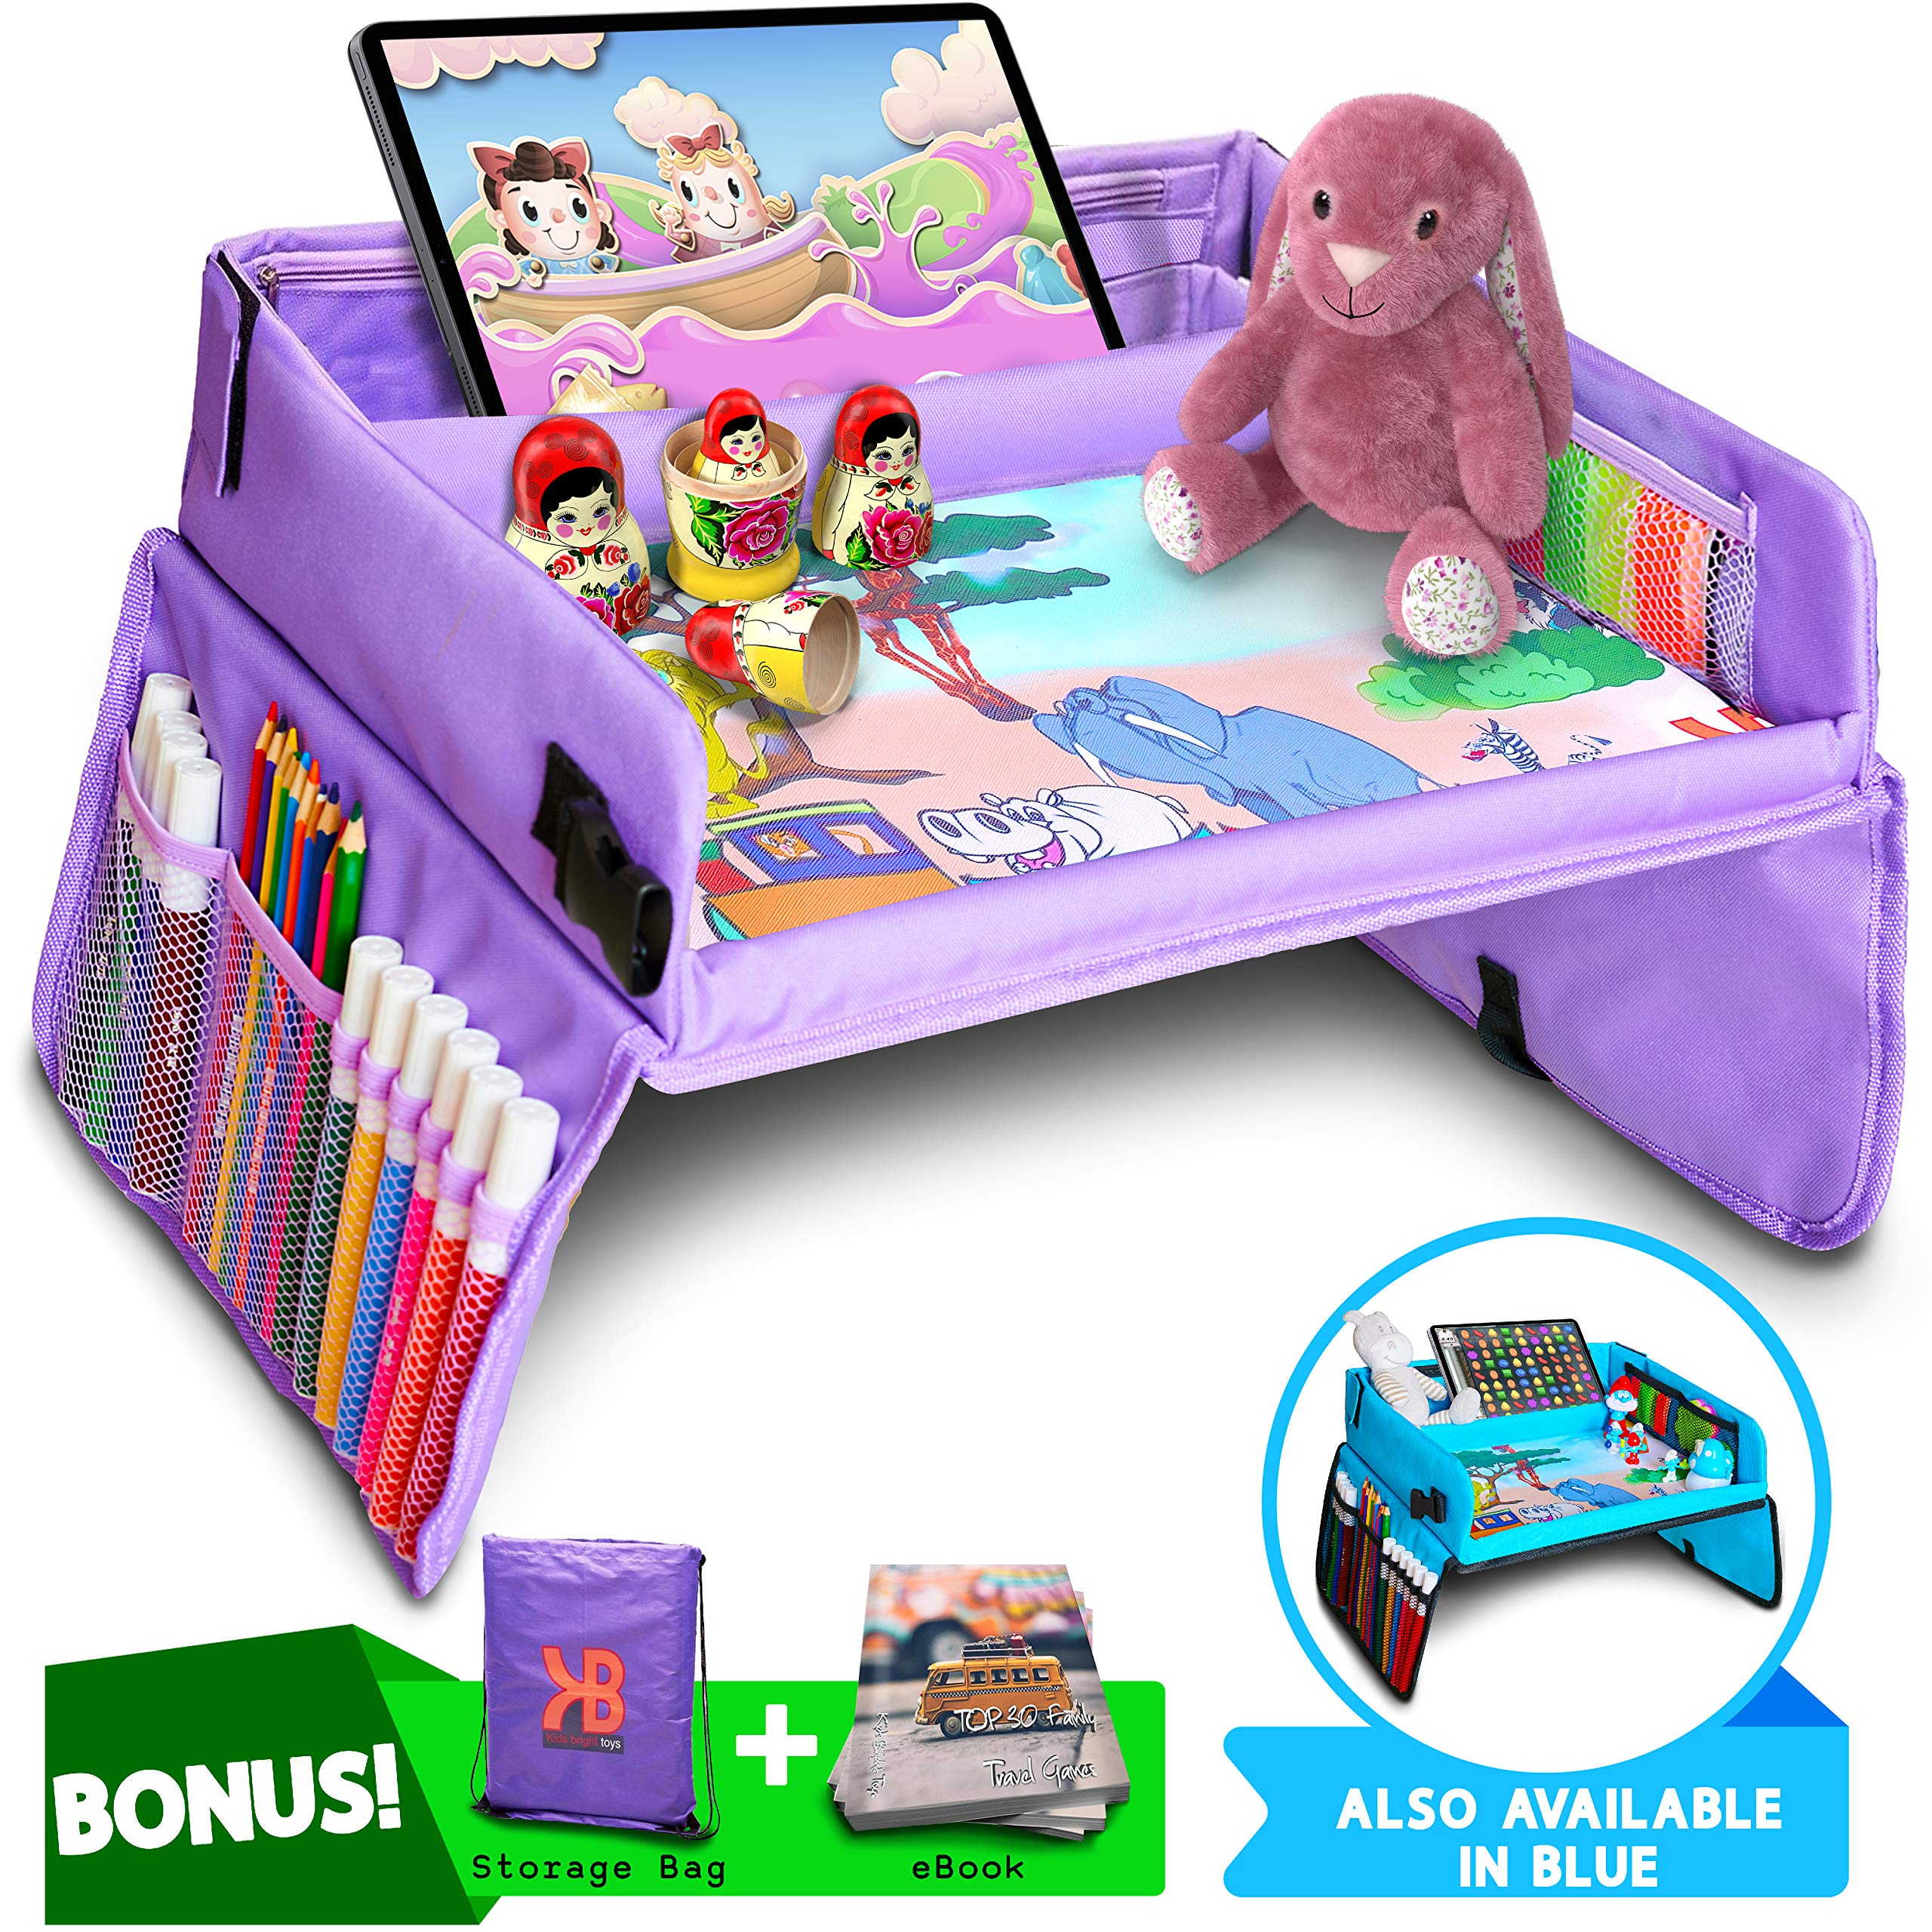 Kids Travel Tray, Car Seat Tray for Toddler + Free Bag & E-Book - Keeps Children Entertained by KIDS BRIGHT TOYS